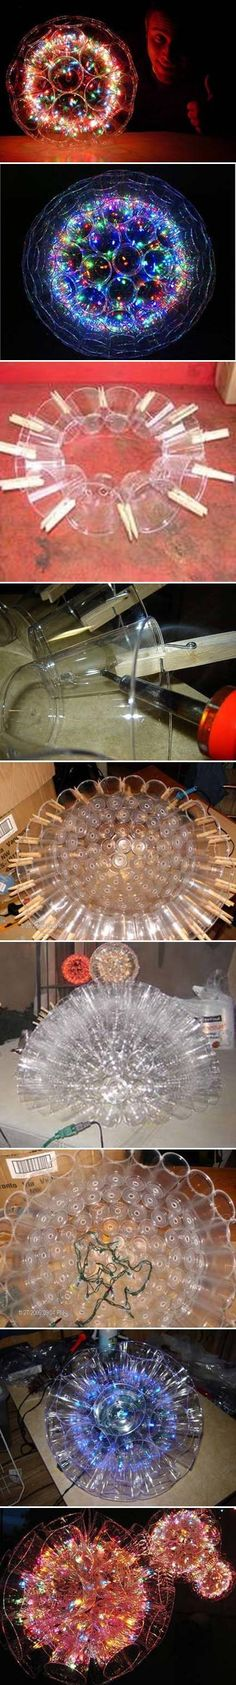 DIY Nice Plastic Cup Lamp DIY Projects | UsefulDIY.com